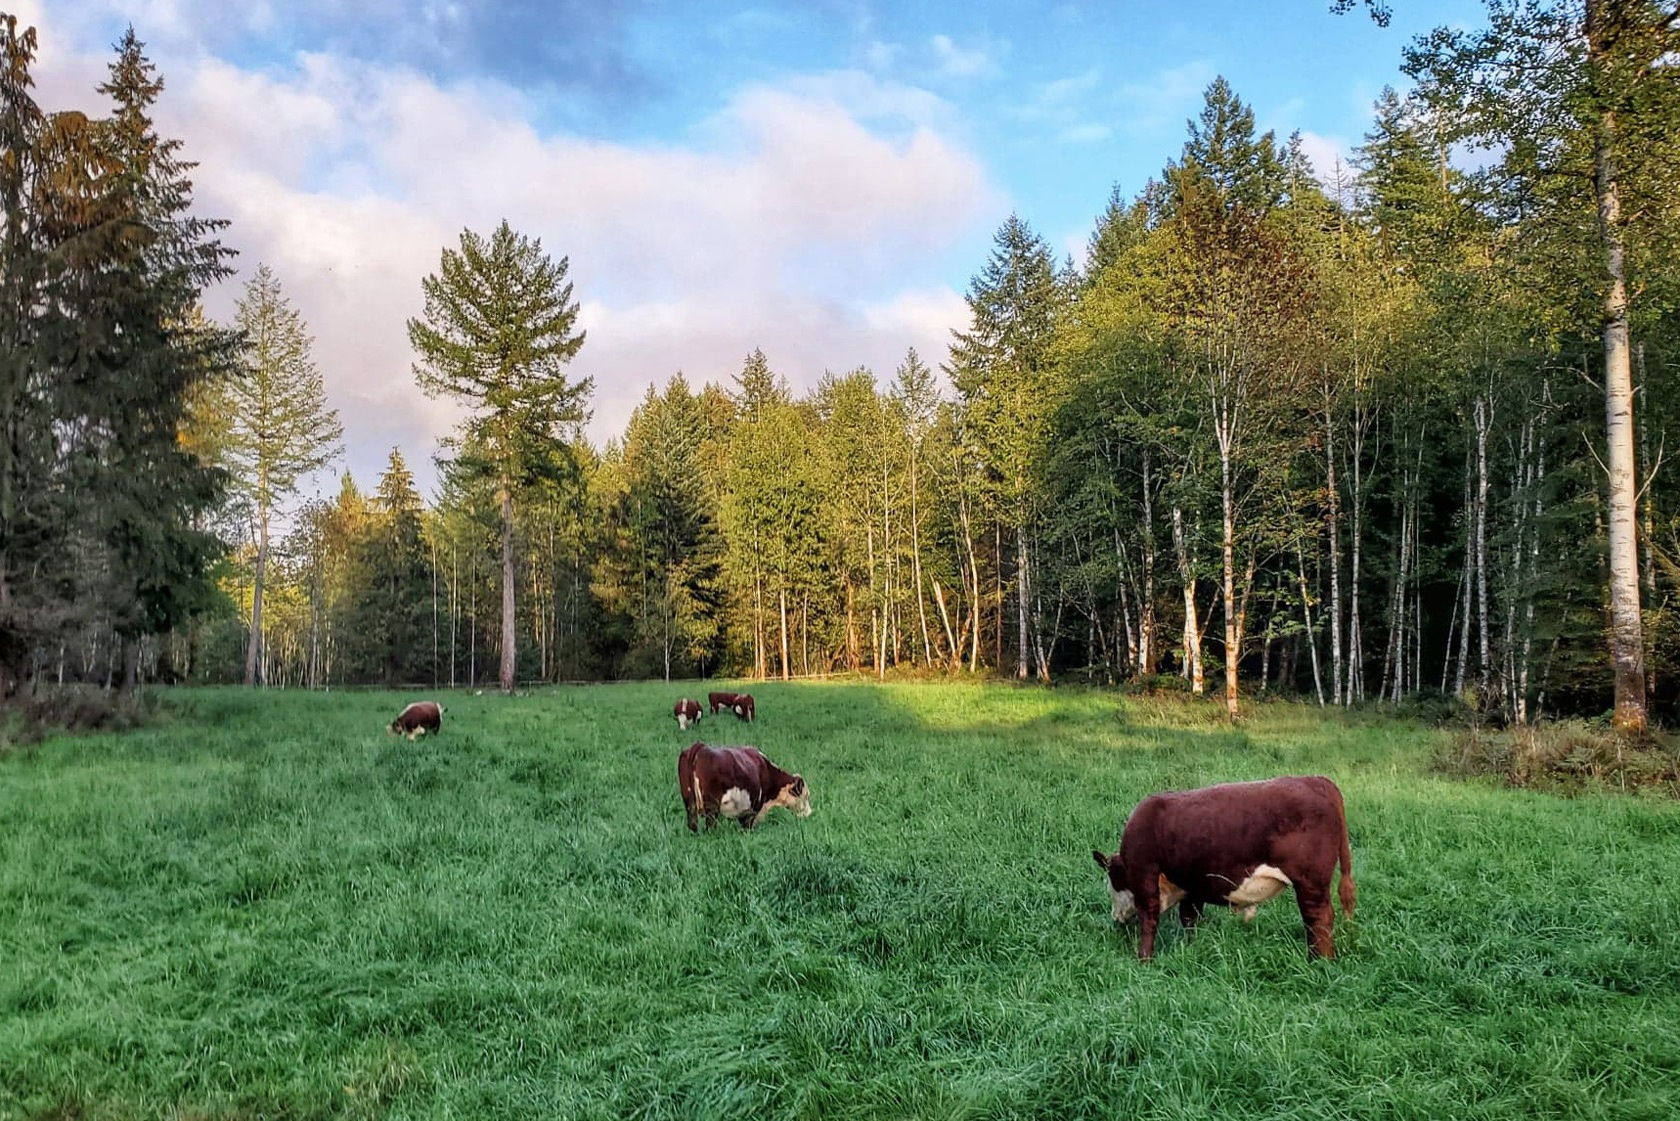 Cows in grassy field comox valley